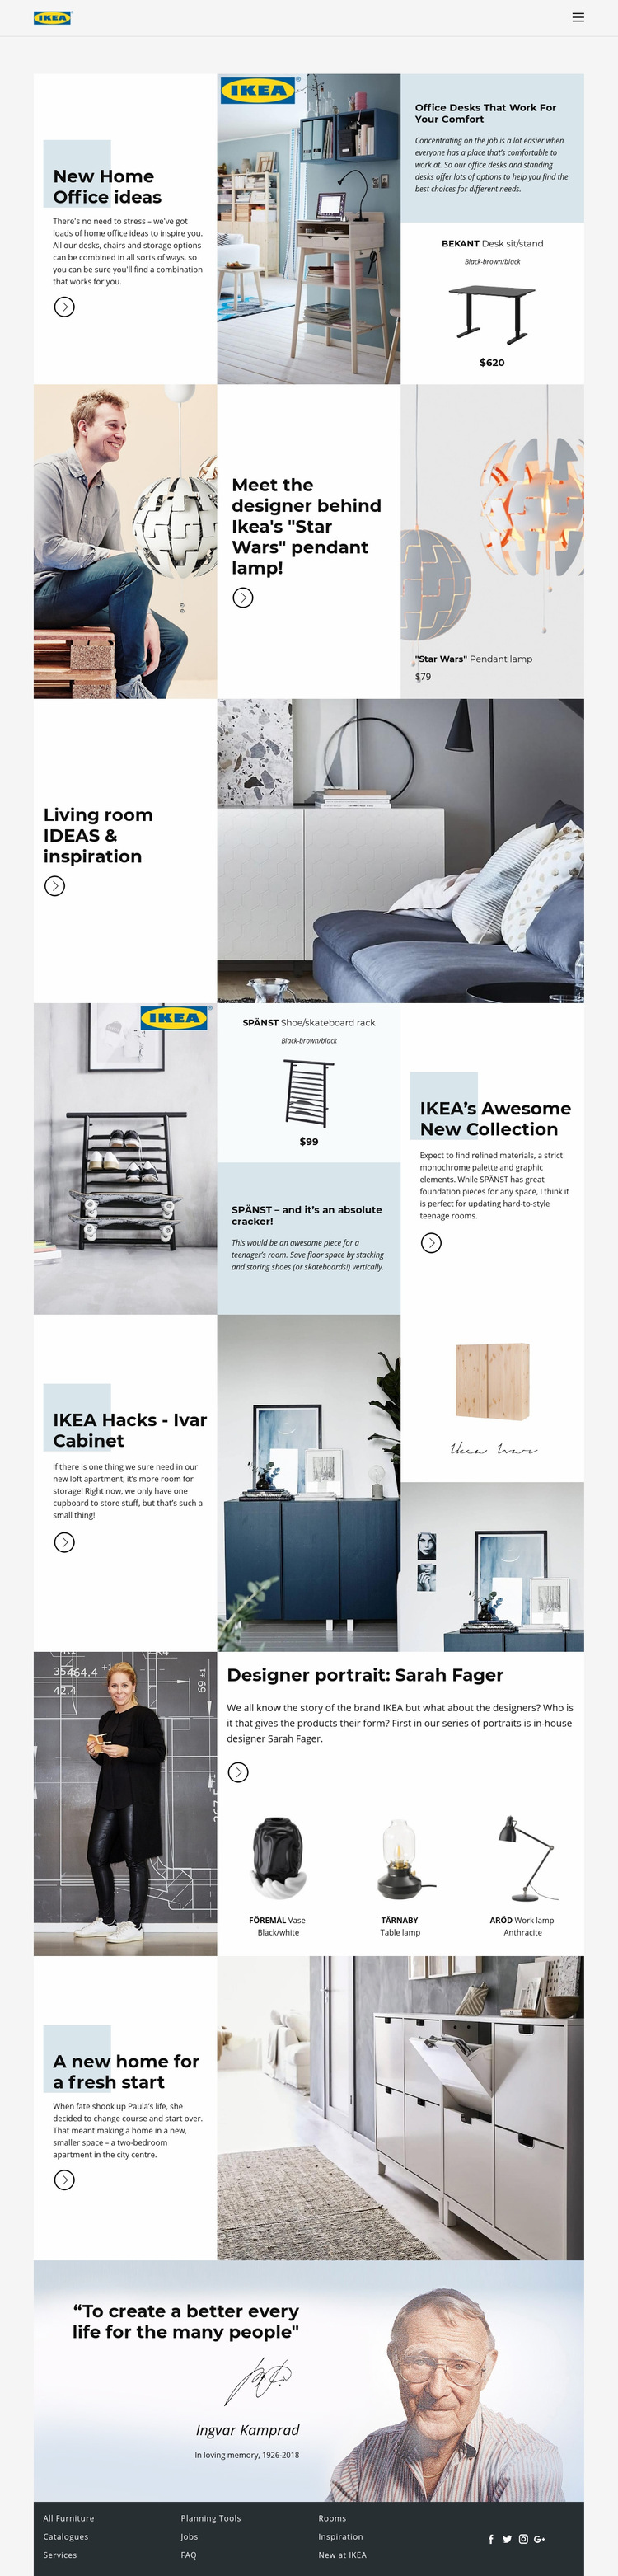 Inspiration from IKEA Web Page Design